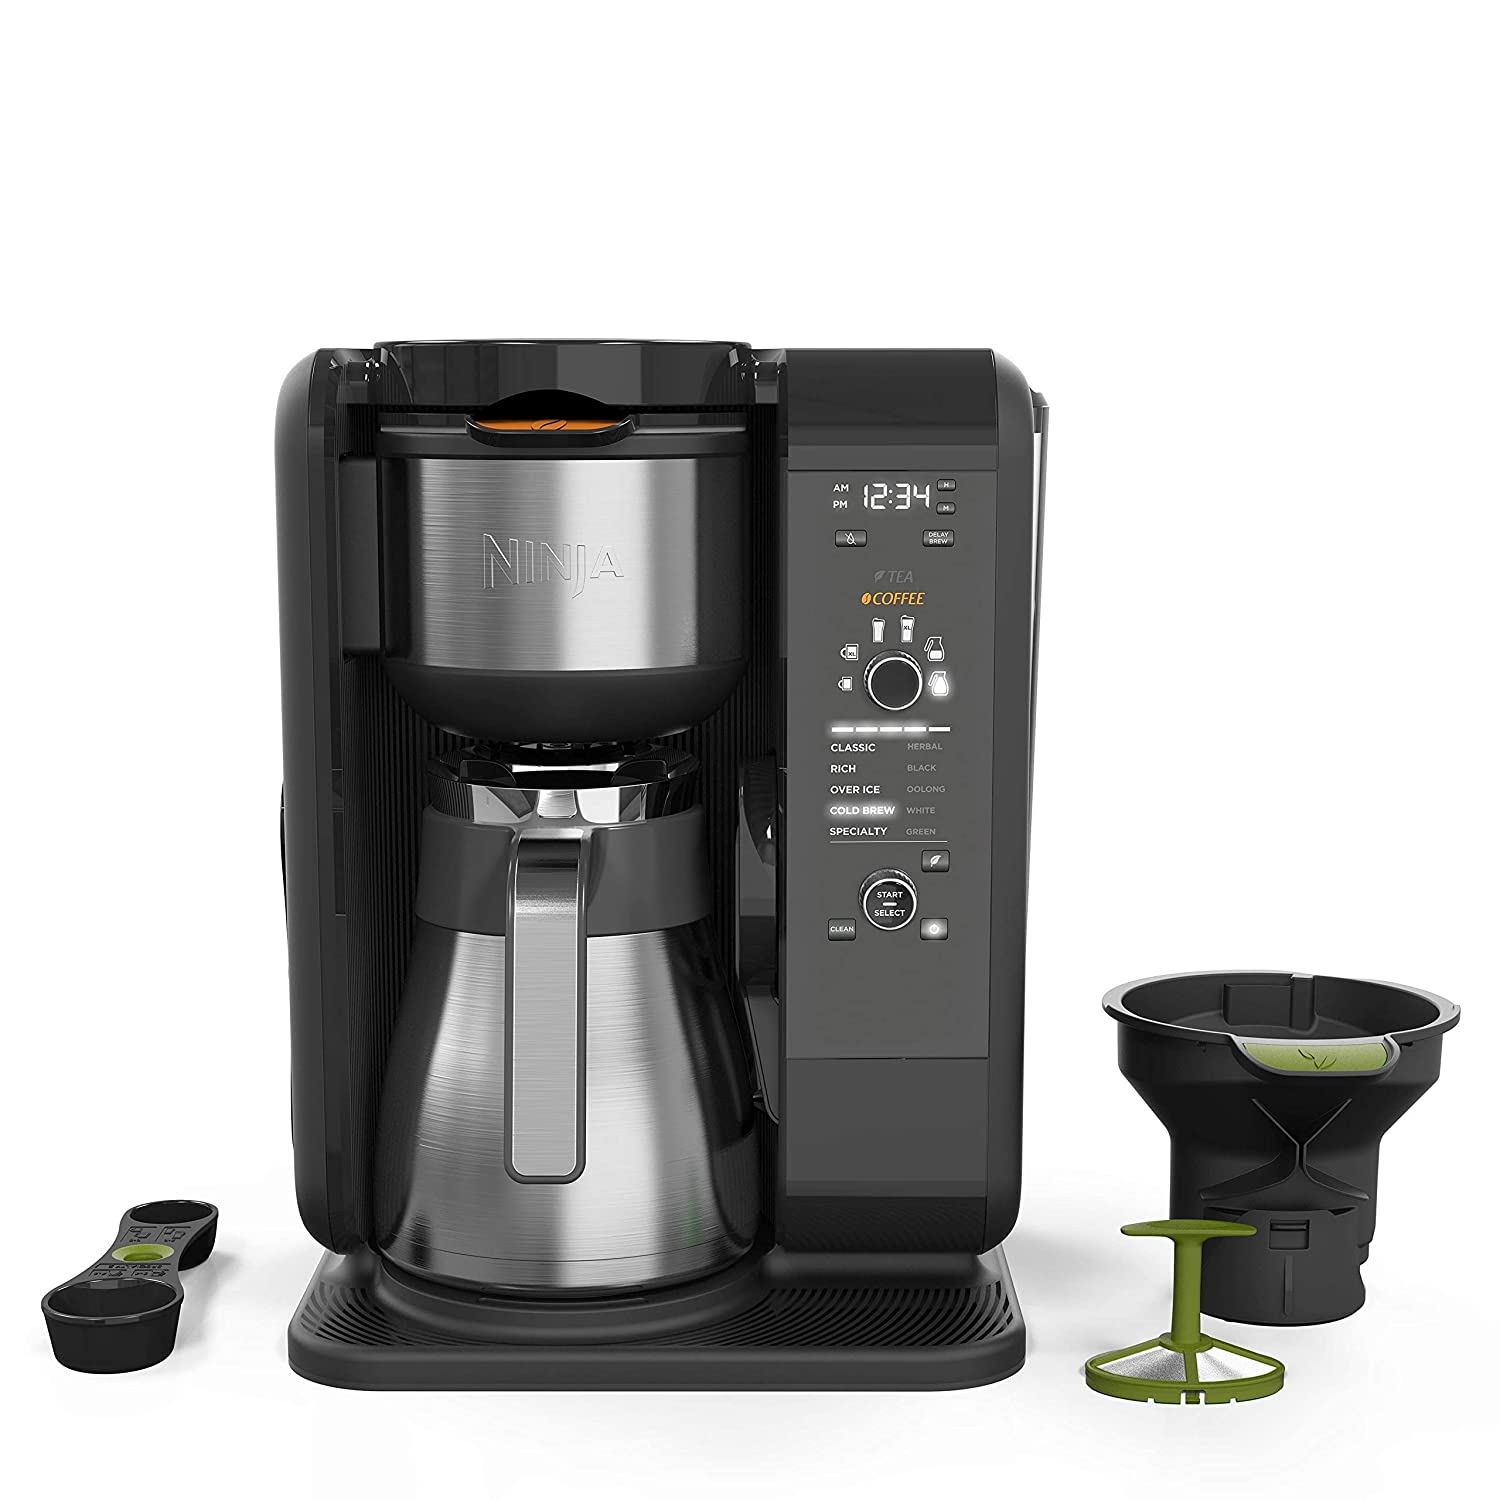 Ninja Hot and Cold Brewed System, Auto-iQ Tea and Coffee Maker with 6 Brew Sizes, 5 Brew Styles, Frother, Coffee & Tea Baskets with Thermal Carafe (CP307) (Renewed)